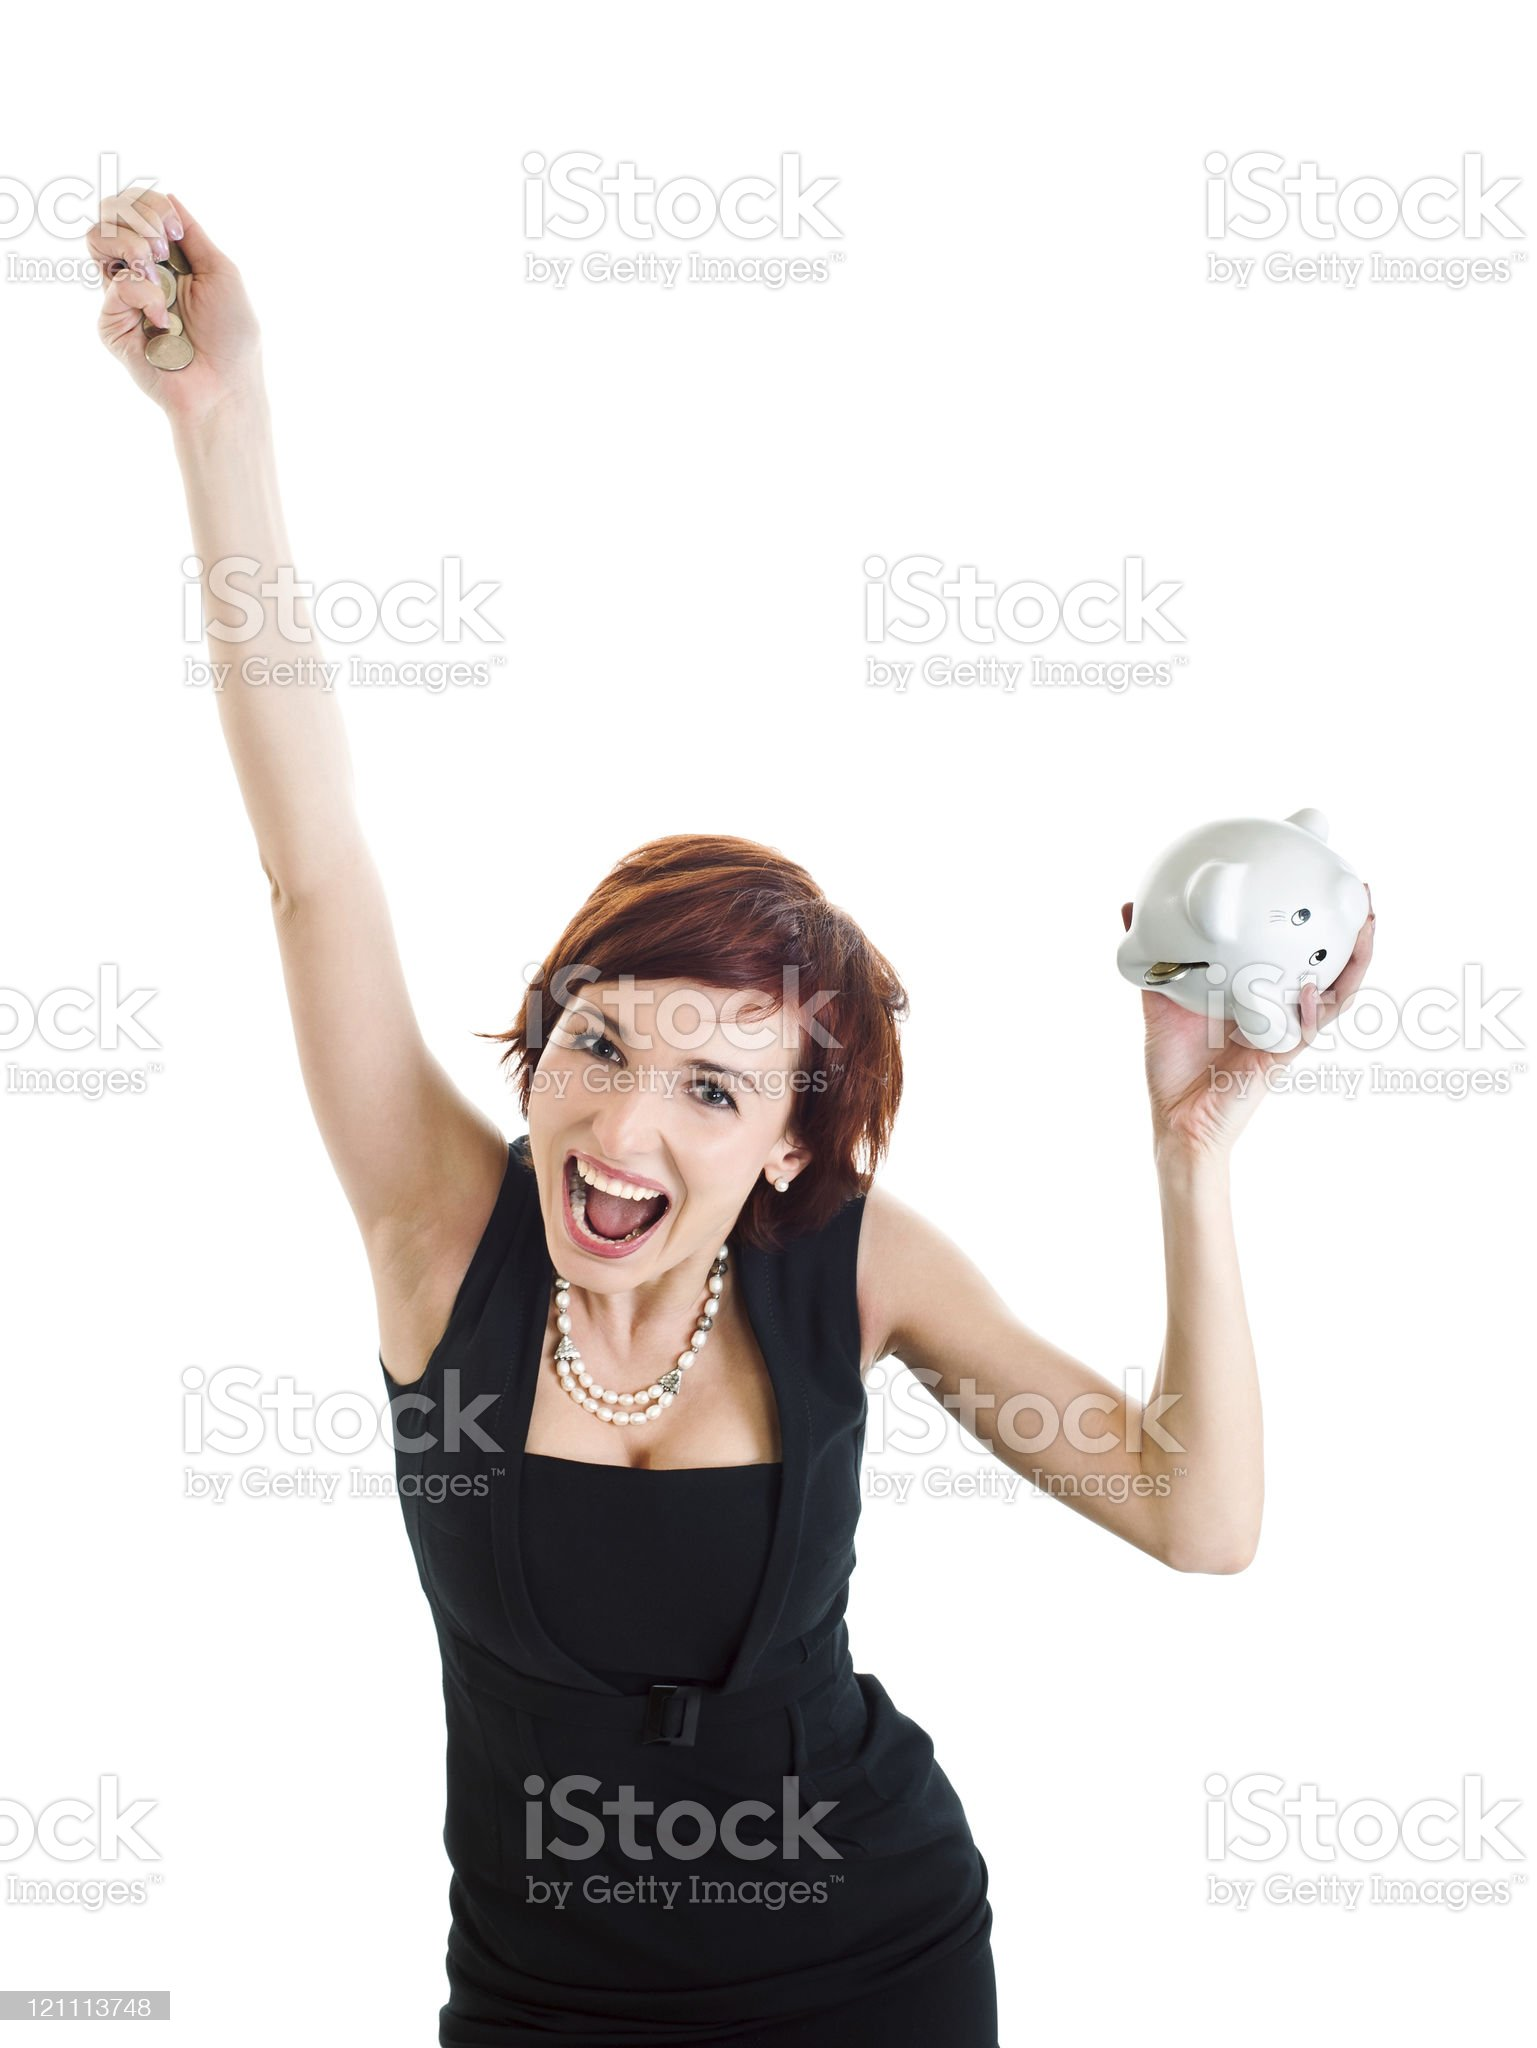 beautiful young woman with piggy bank against white background royalty-free stock photo